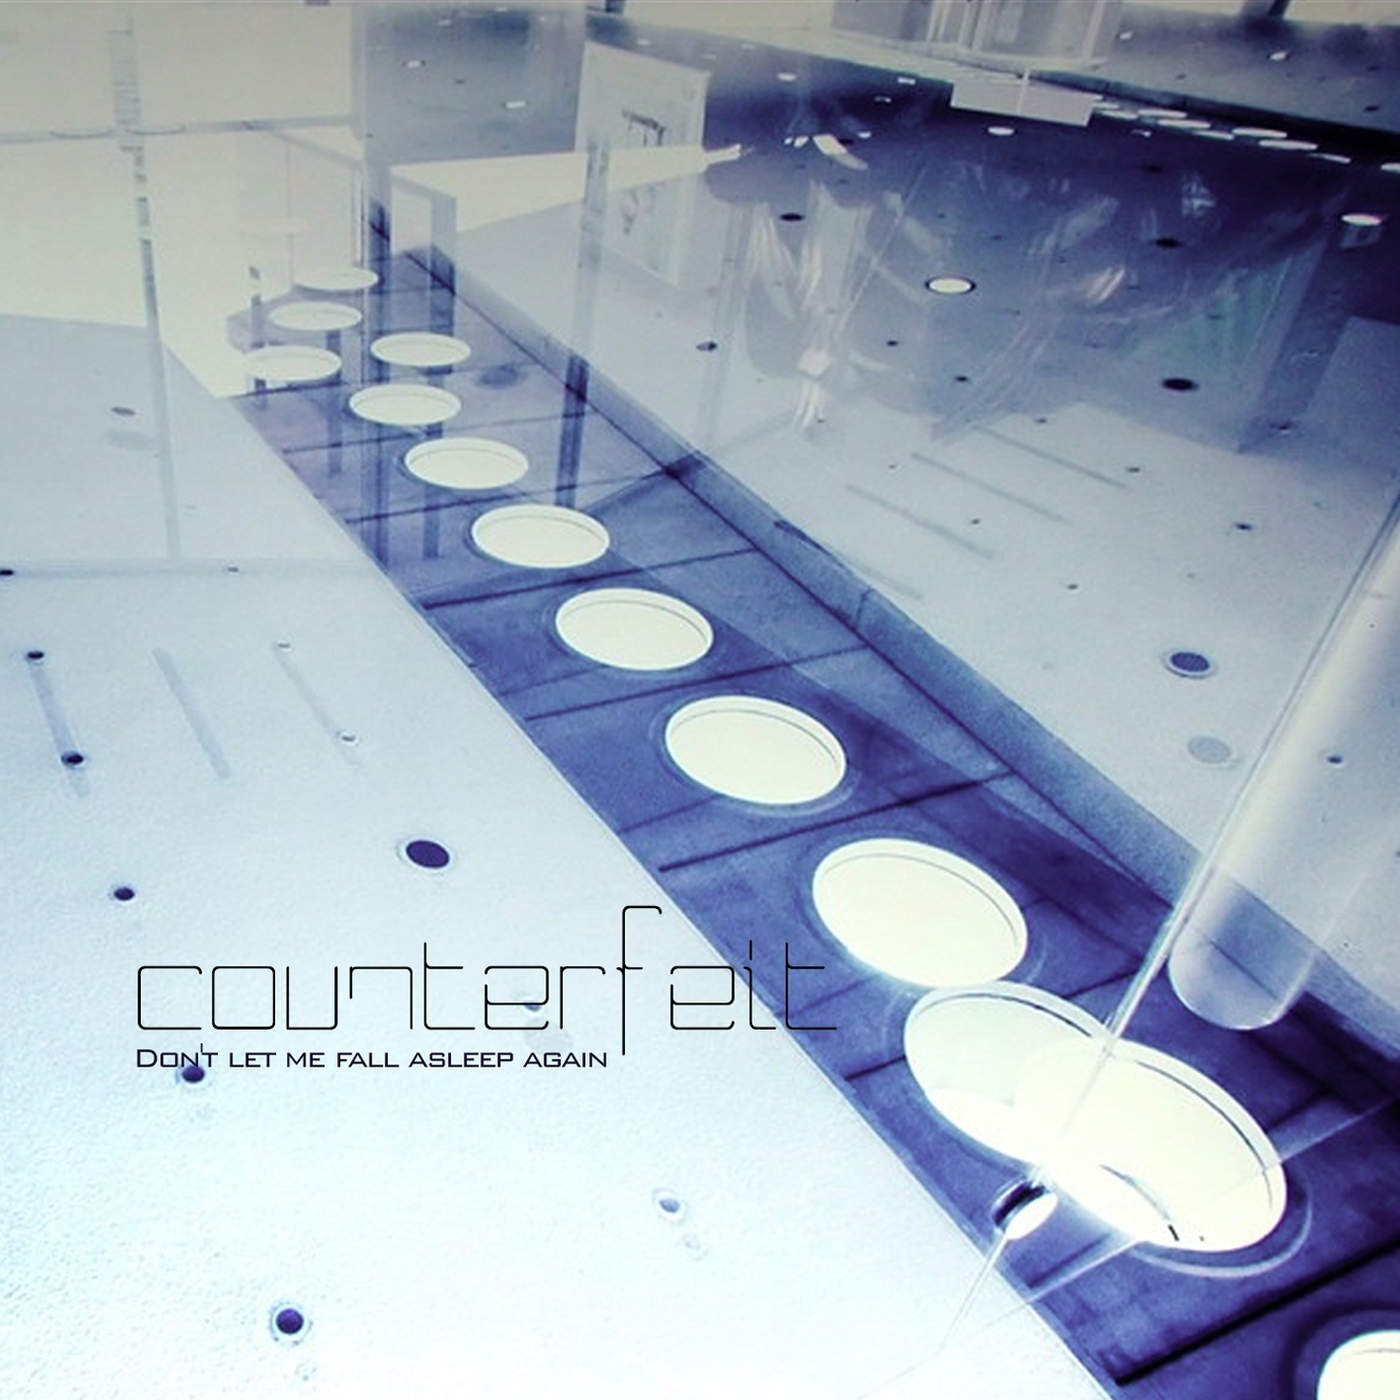 Counterfeit - Don't Let Me Fall Asleep Again